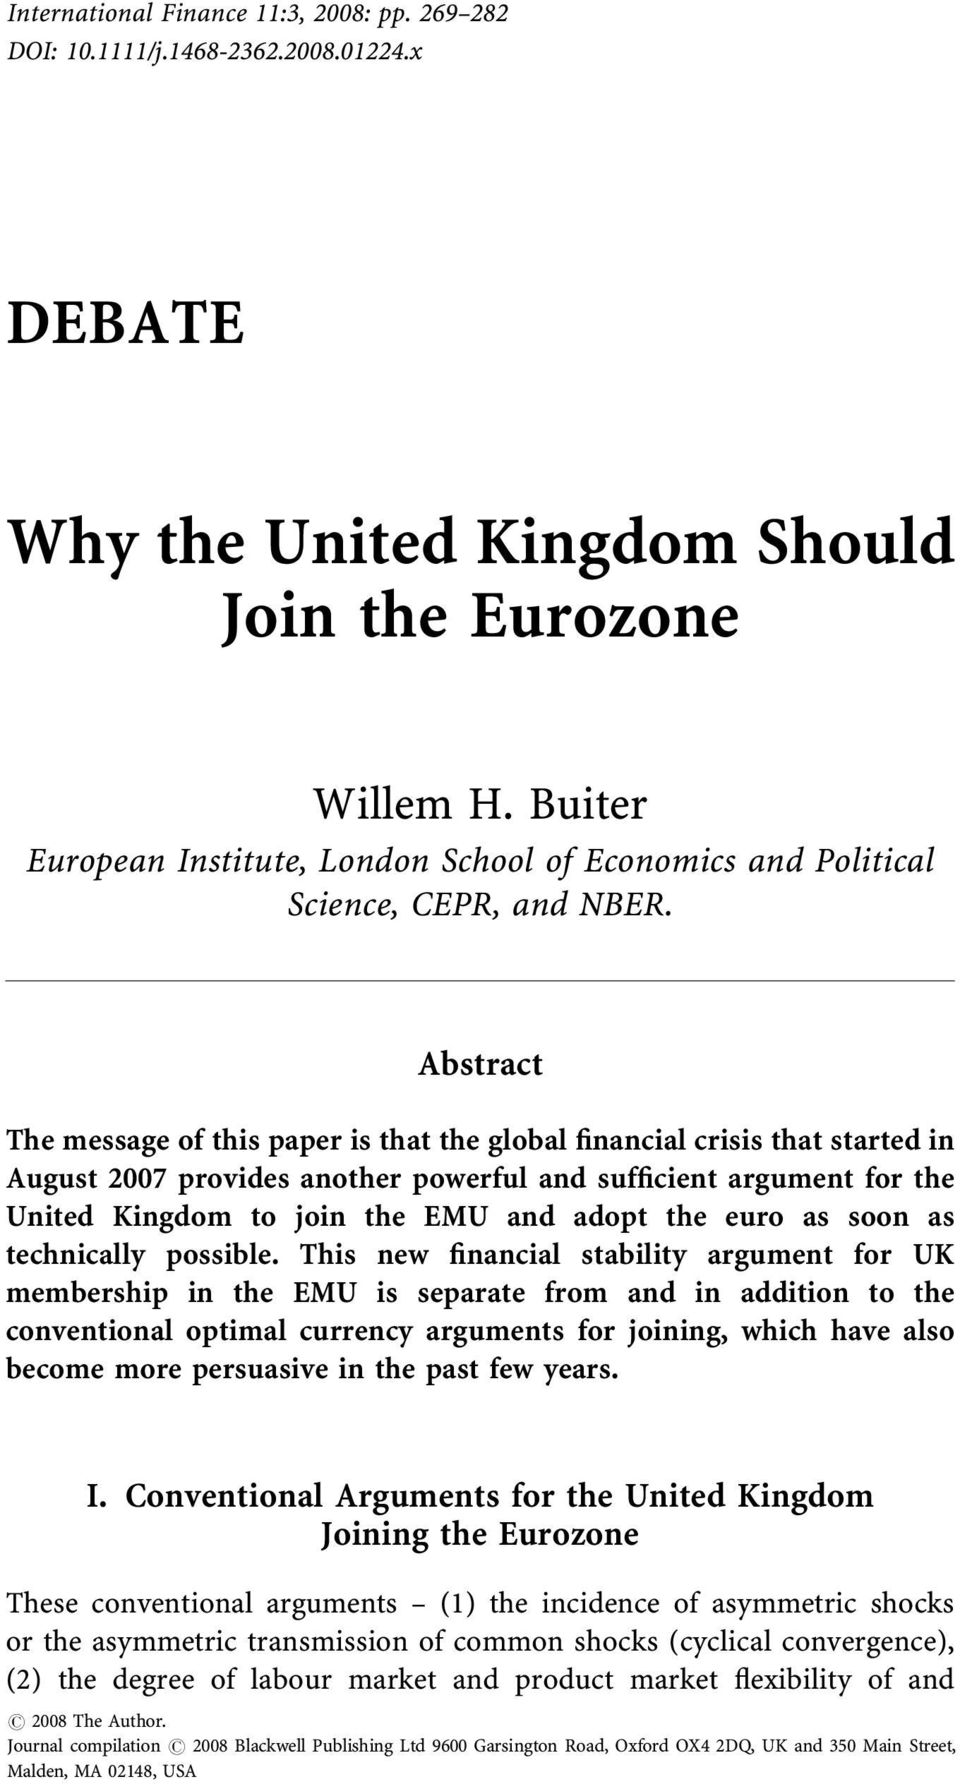 Abstract The message of this paper is that the global financial crisis that started in August 2007 provides another powerful and sufficient argument for the United Kingdom to join the EMU and adopt